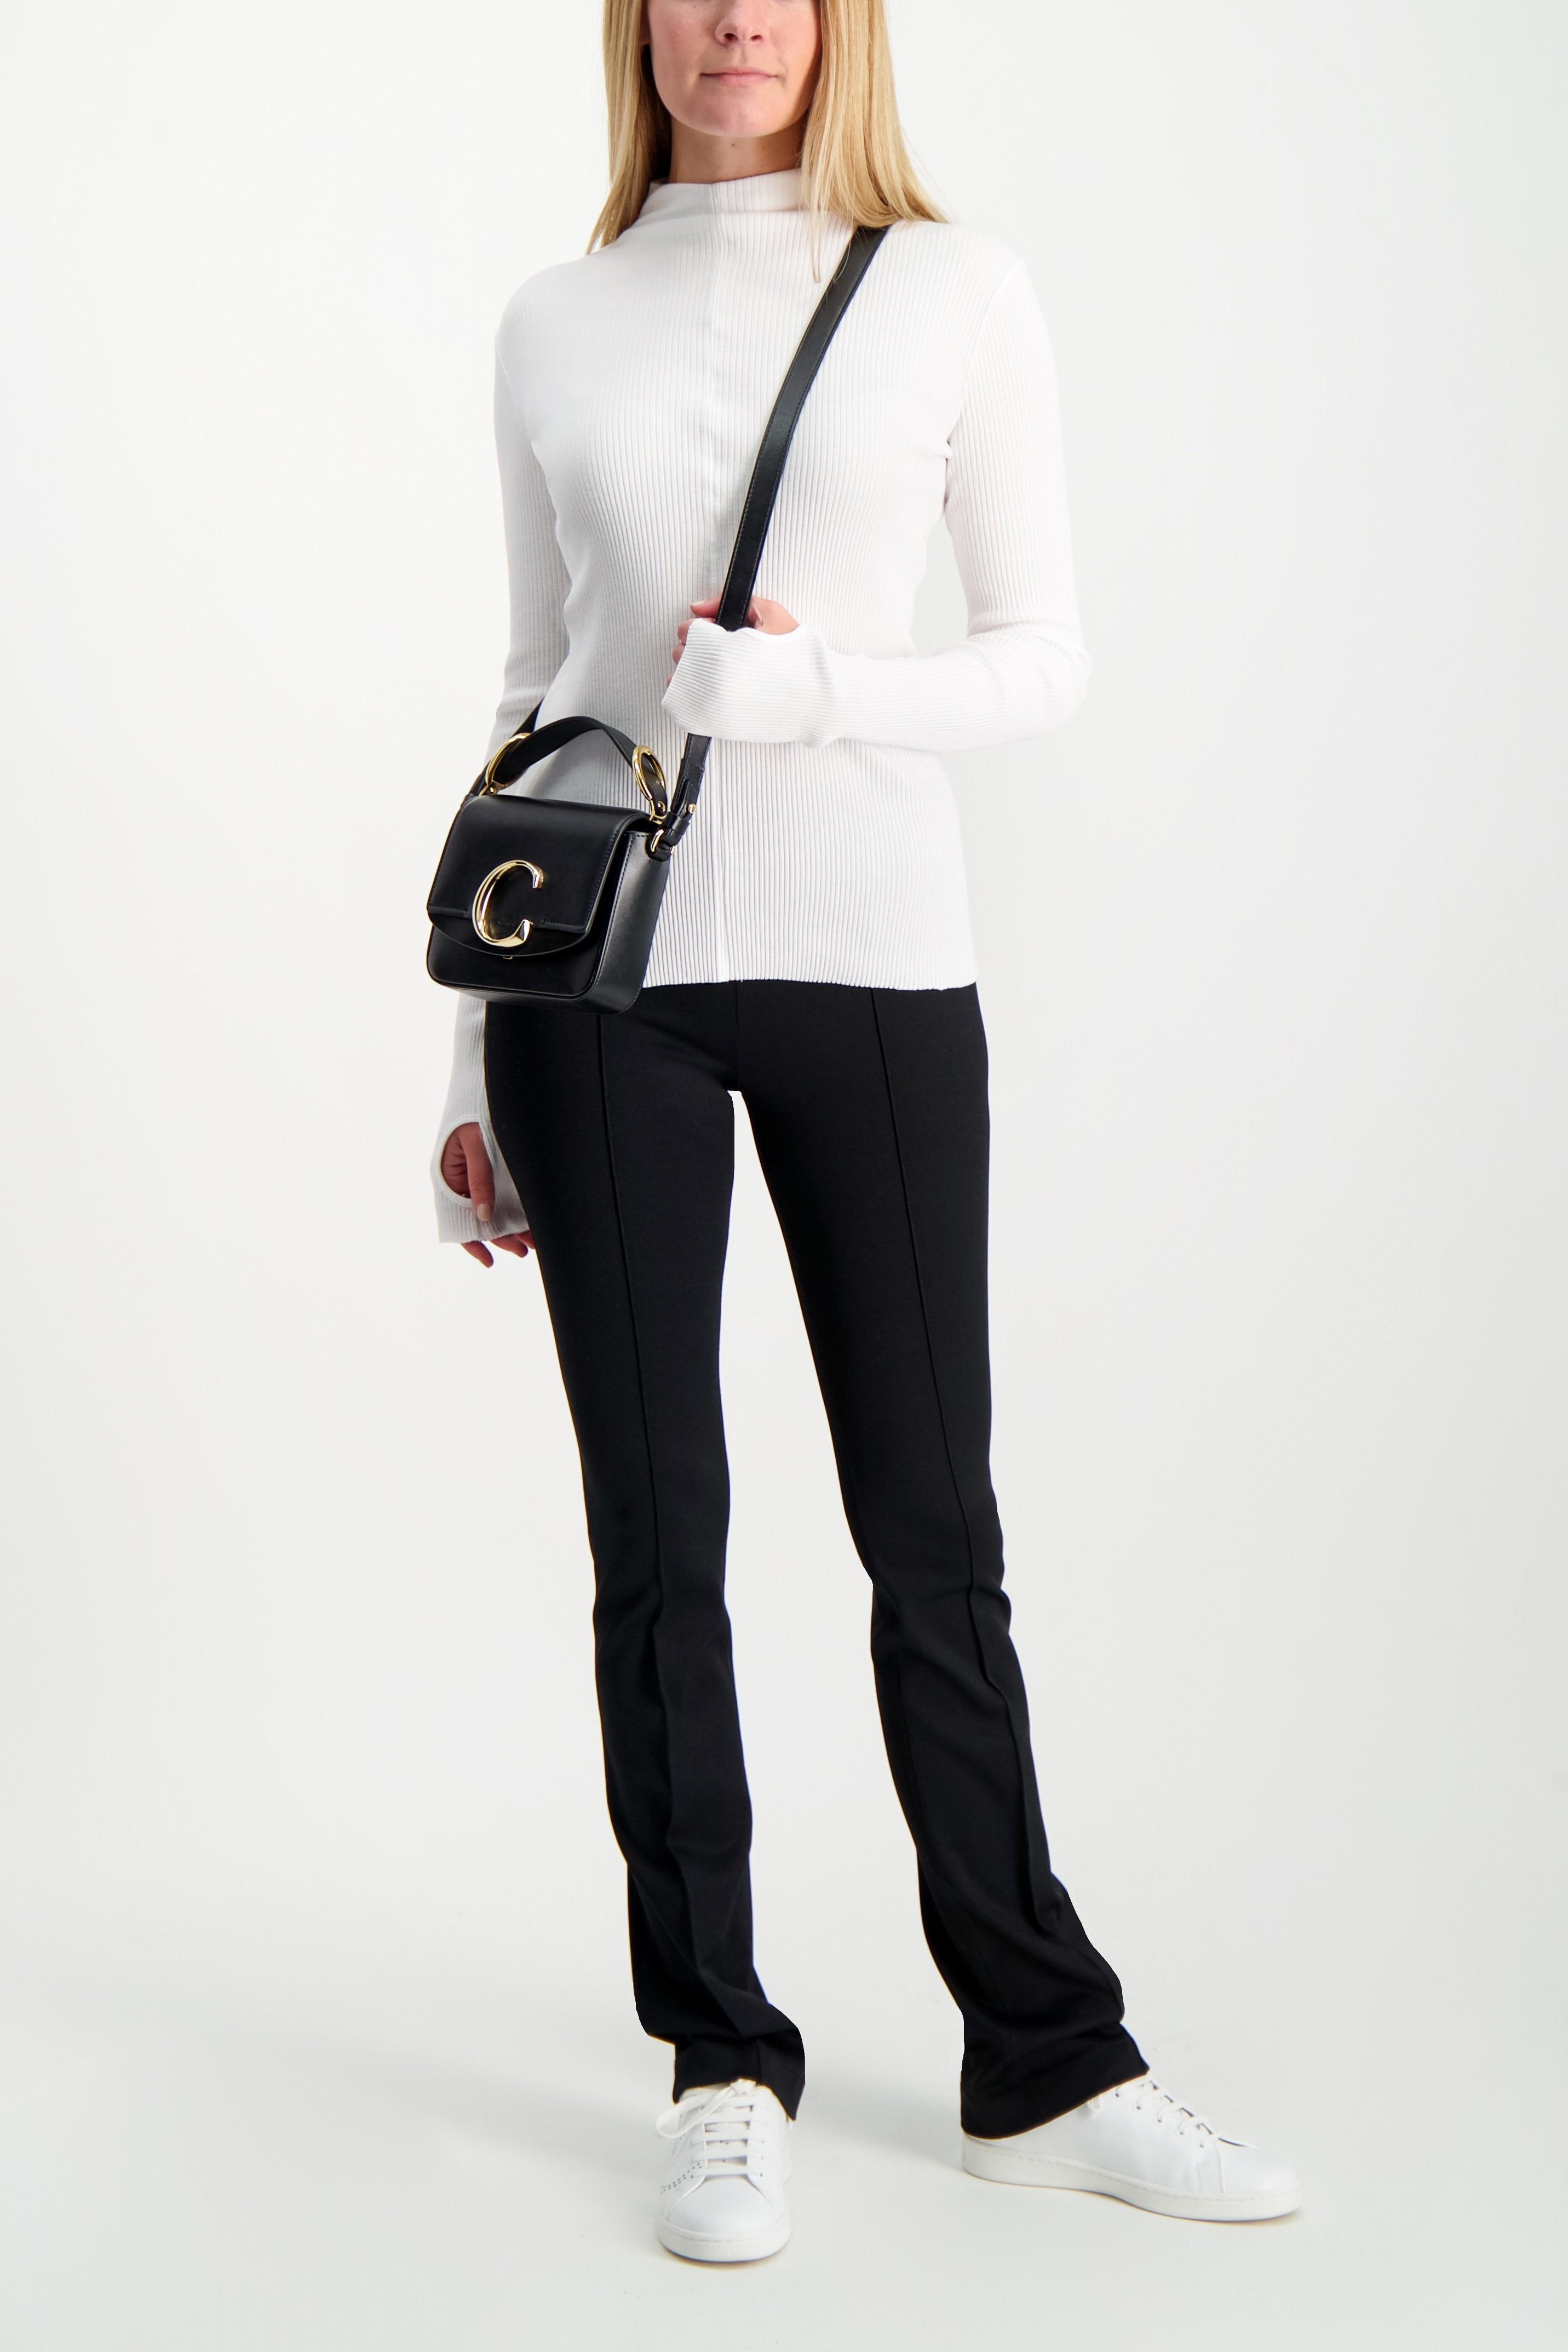 Full Body Image Of Model Wearing Helmut Lang High Neck Rib Top White